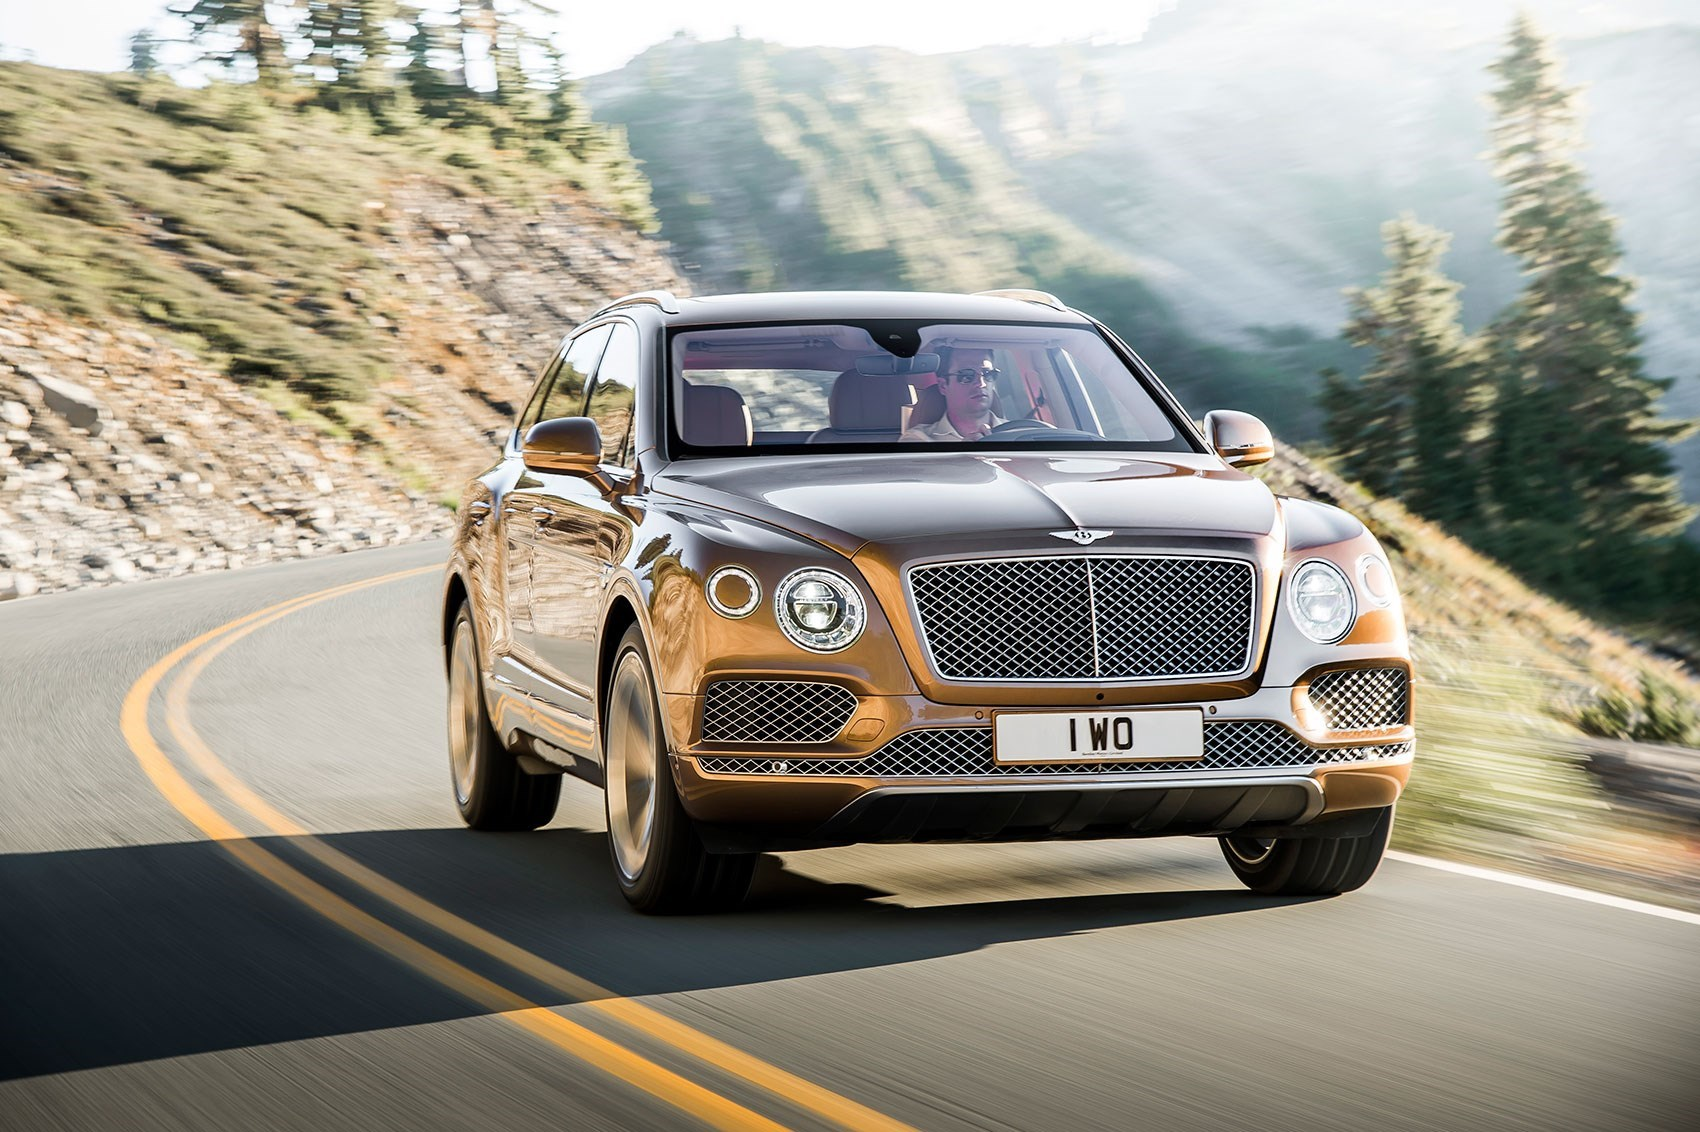 world of story continental introduces front motors our series magazine subscription website camel gt news bentley timeless white en